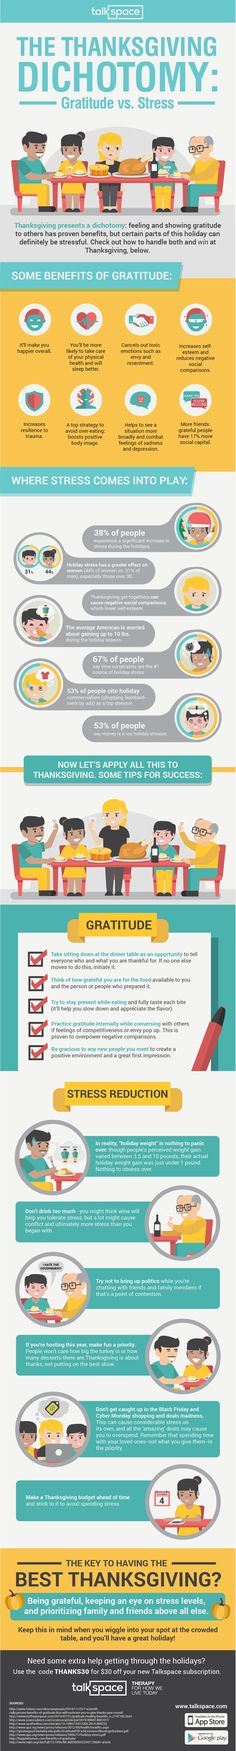 The Thanksgiving Dichotomy: Gratitude vs. Stress [infographic]